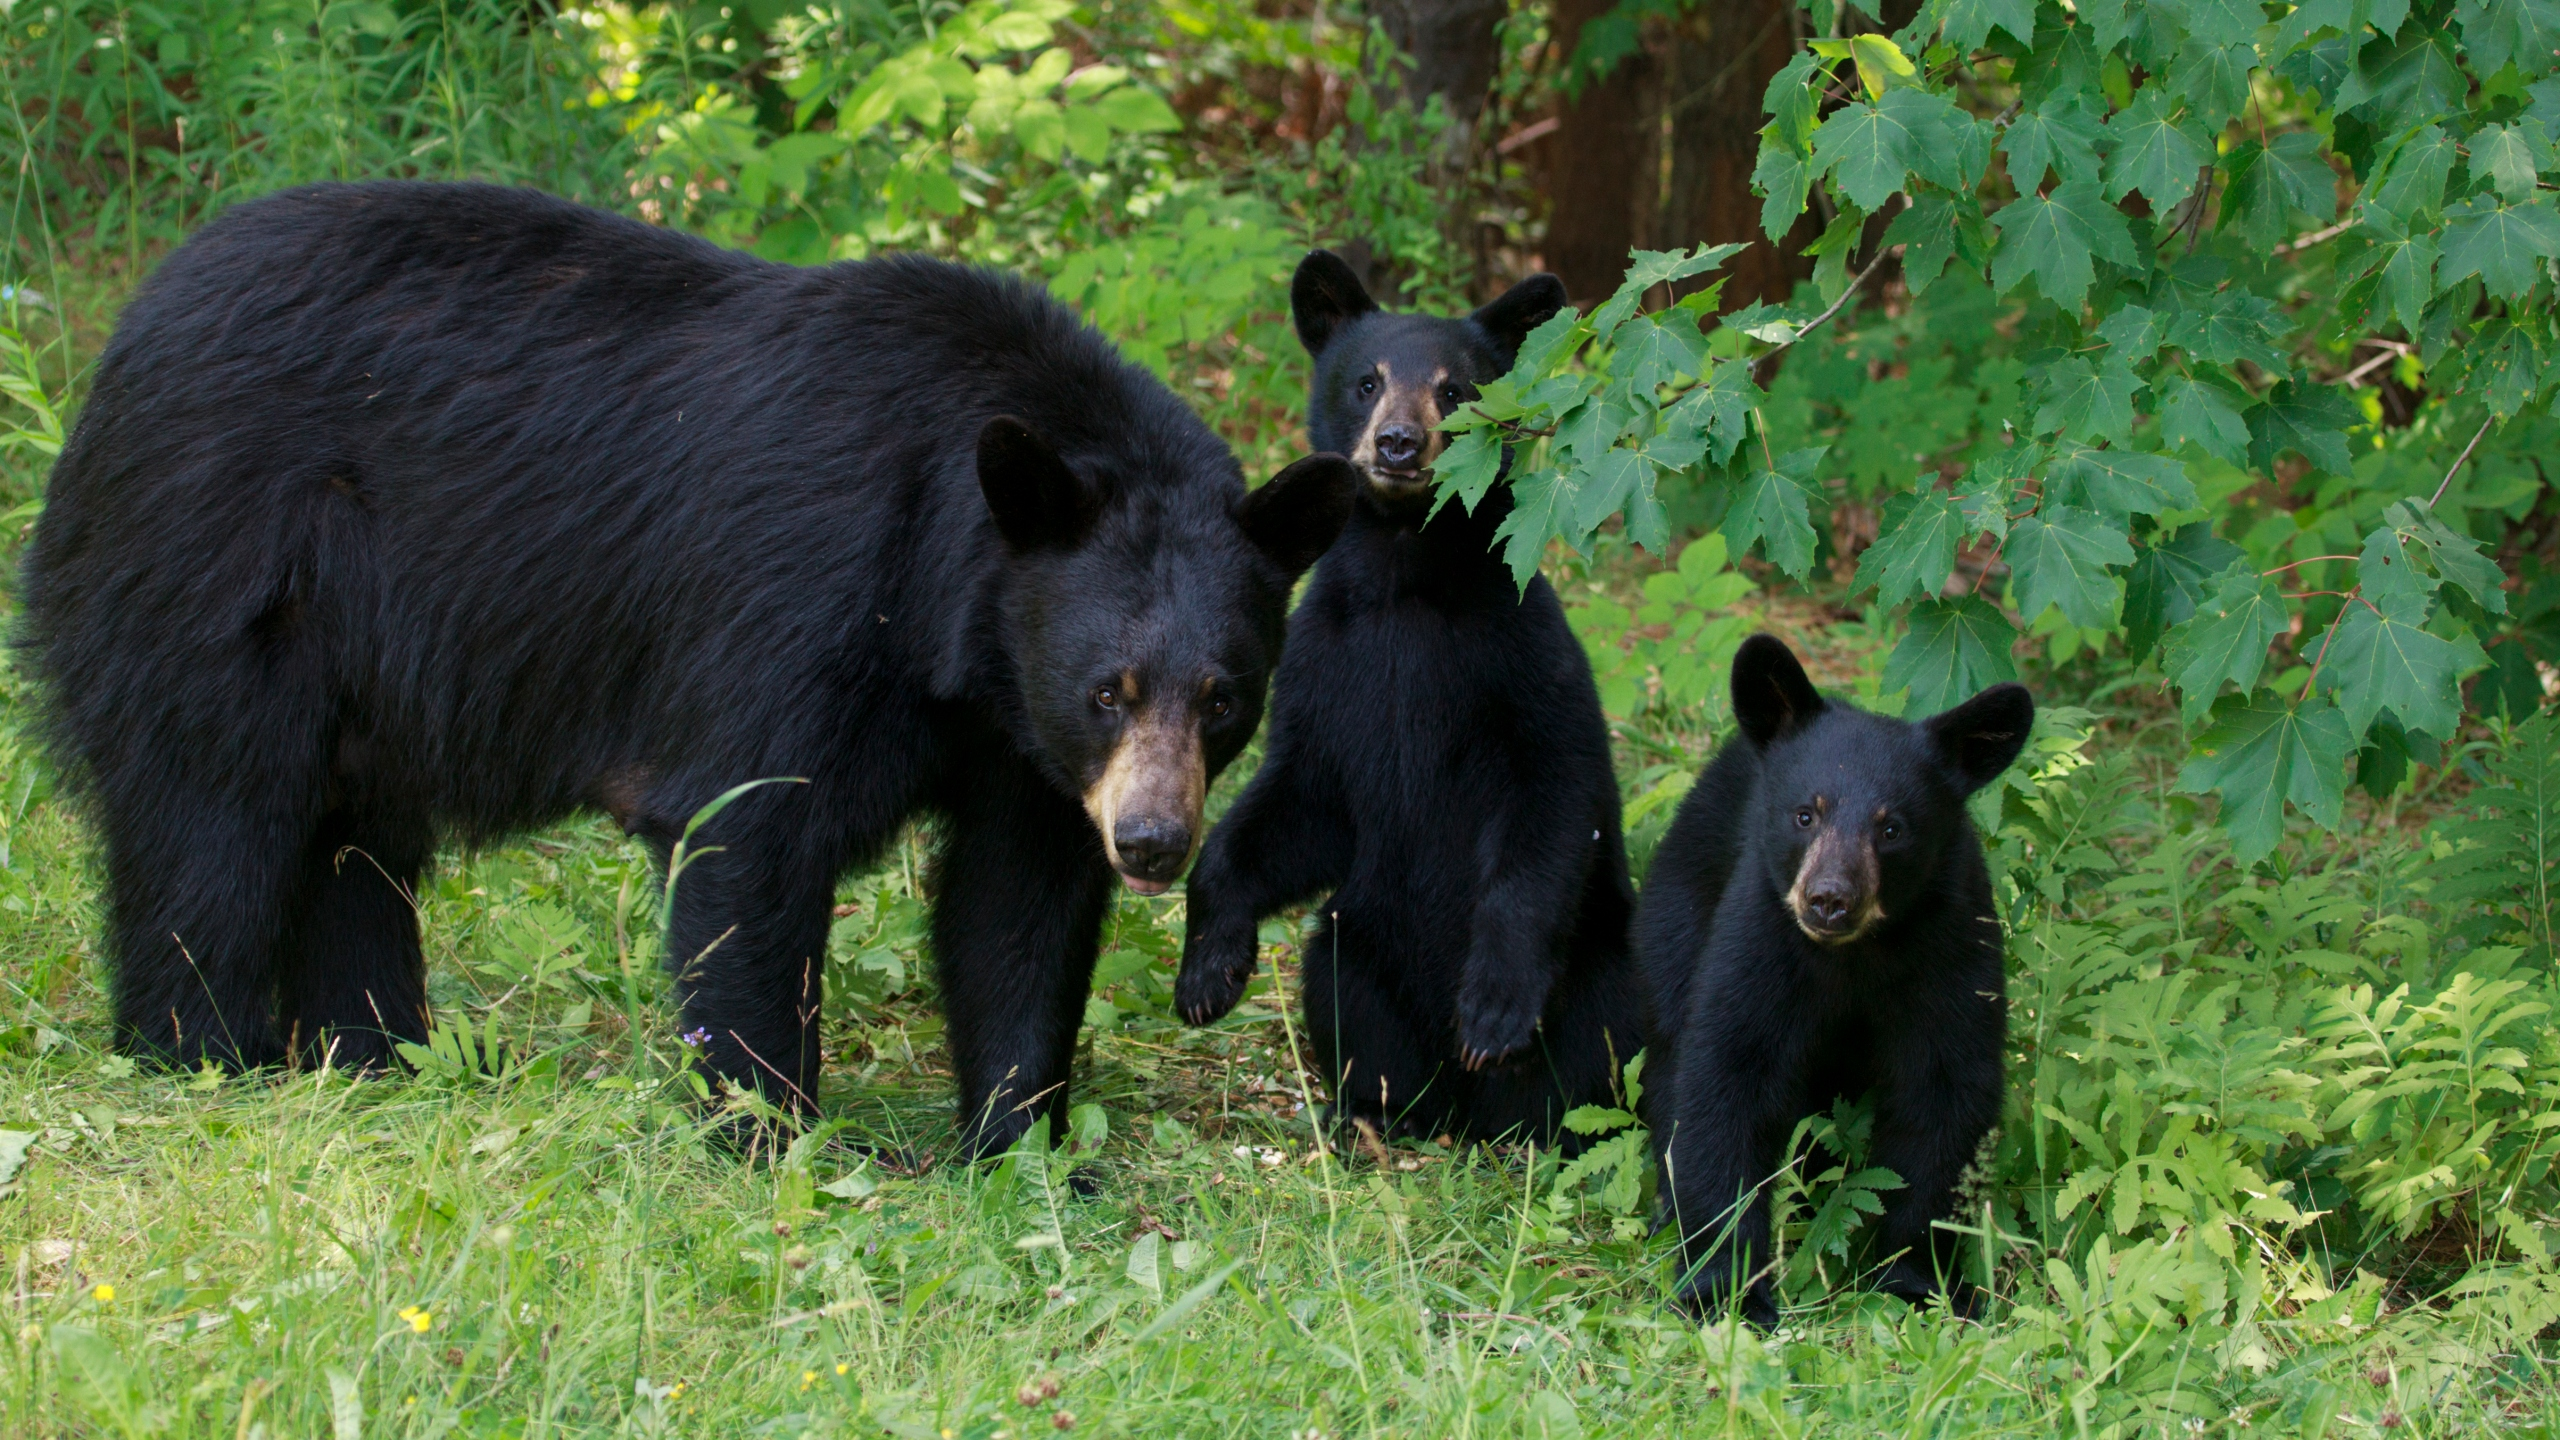 A family of black bears is seen in a file photo. (Credit: iStock/Getty Images Plus)